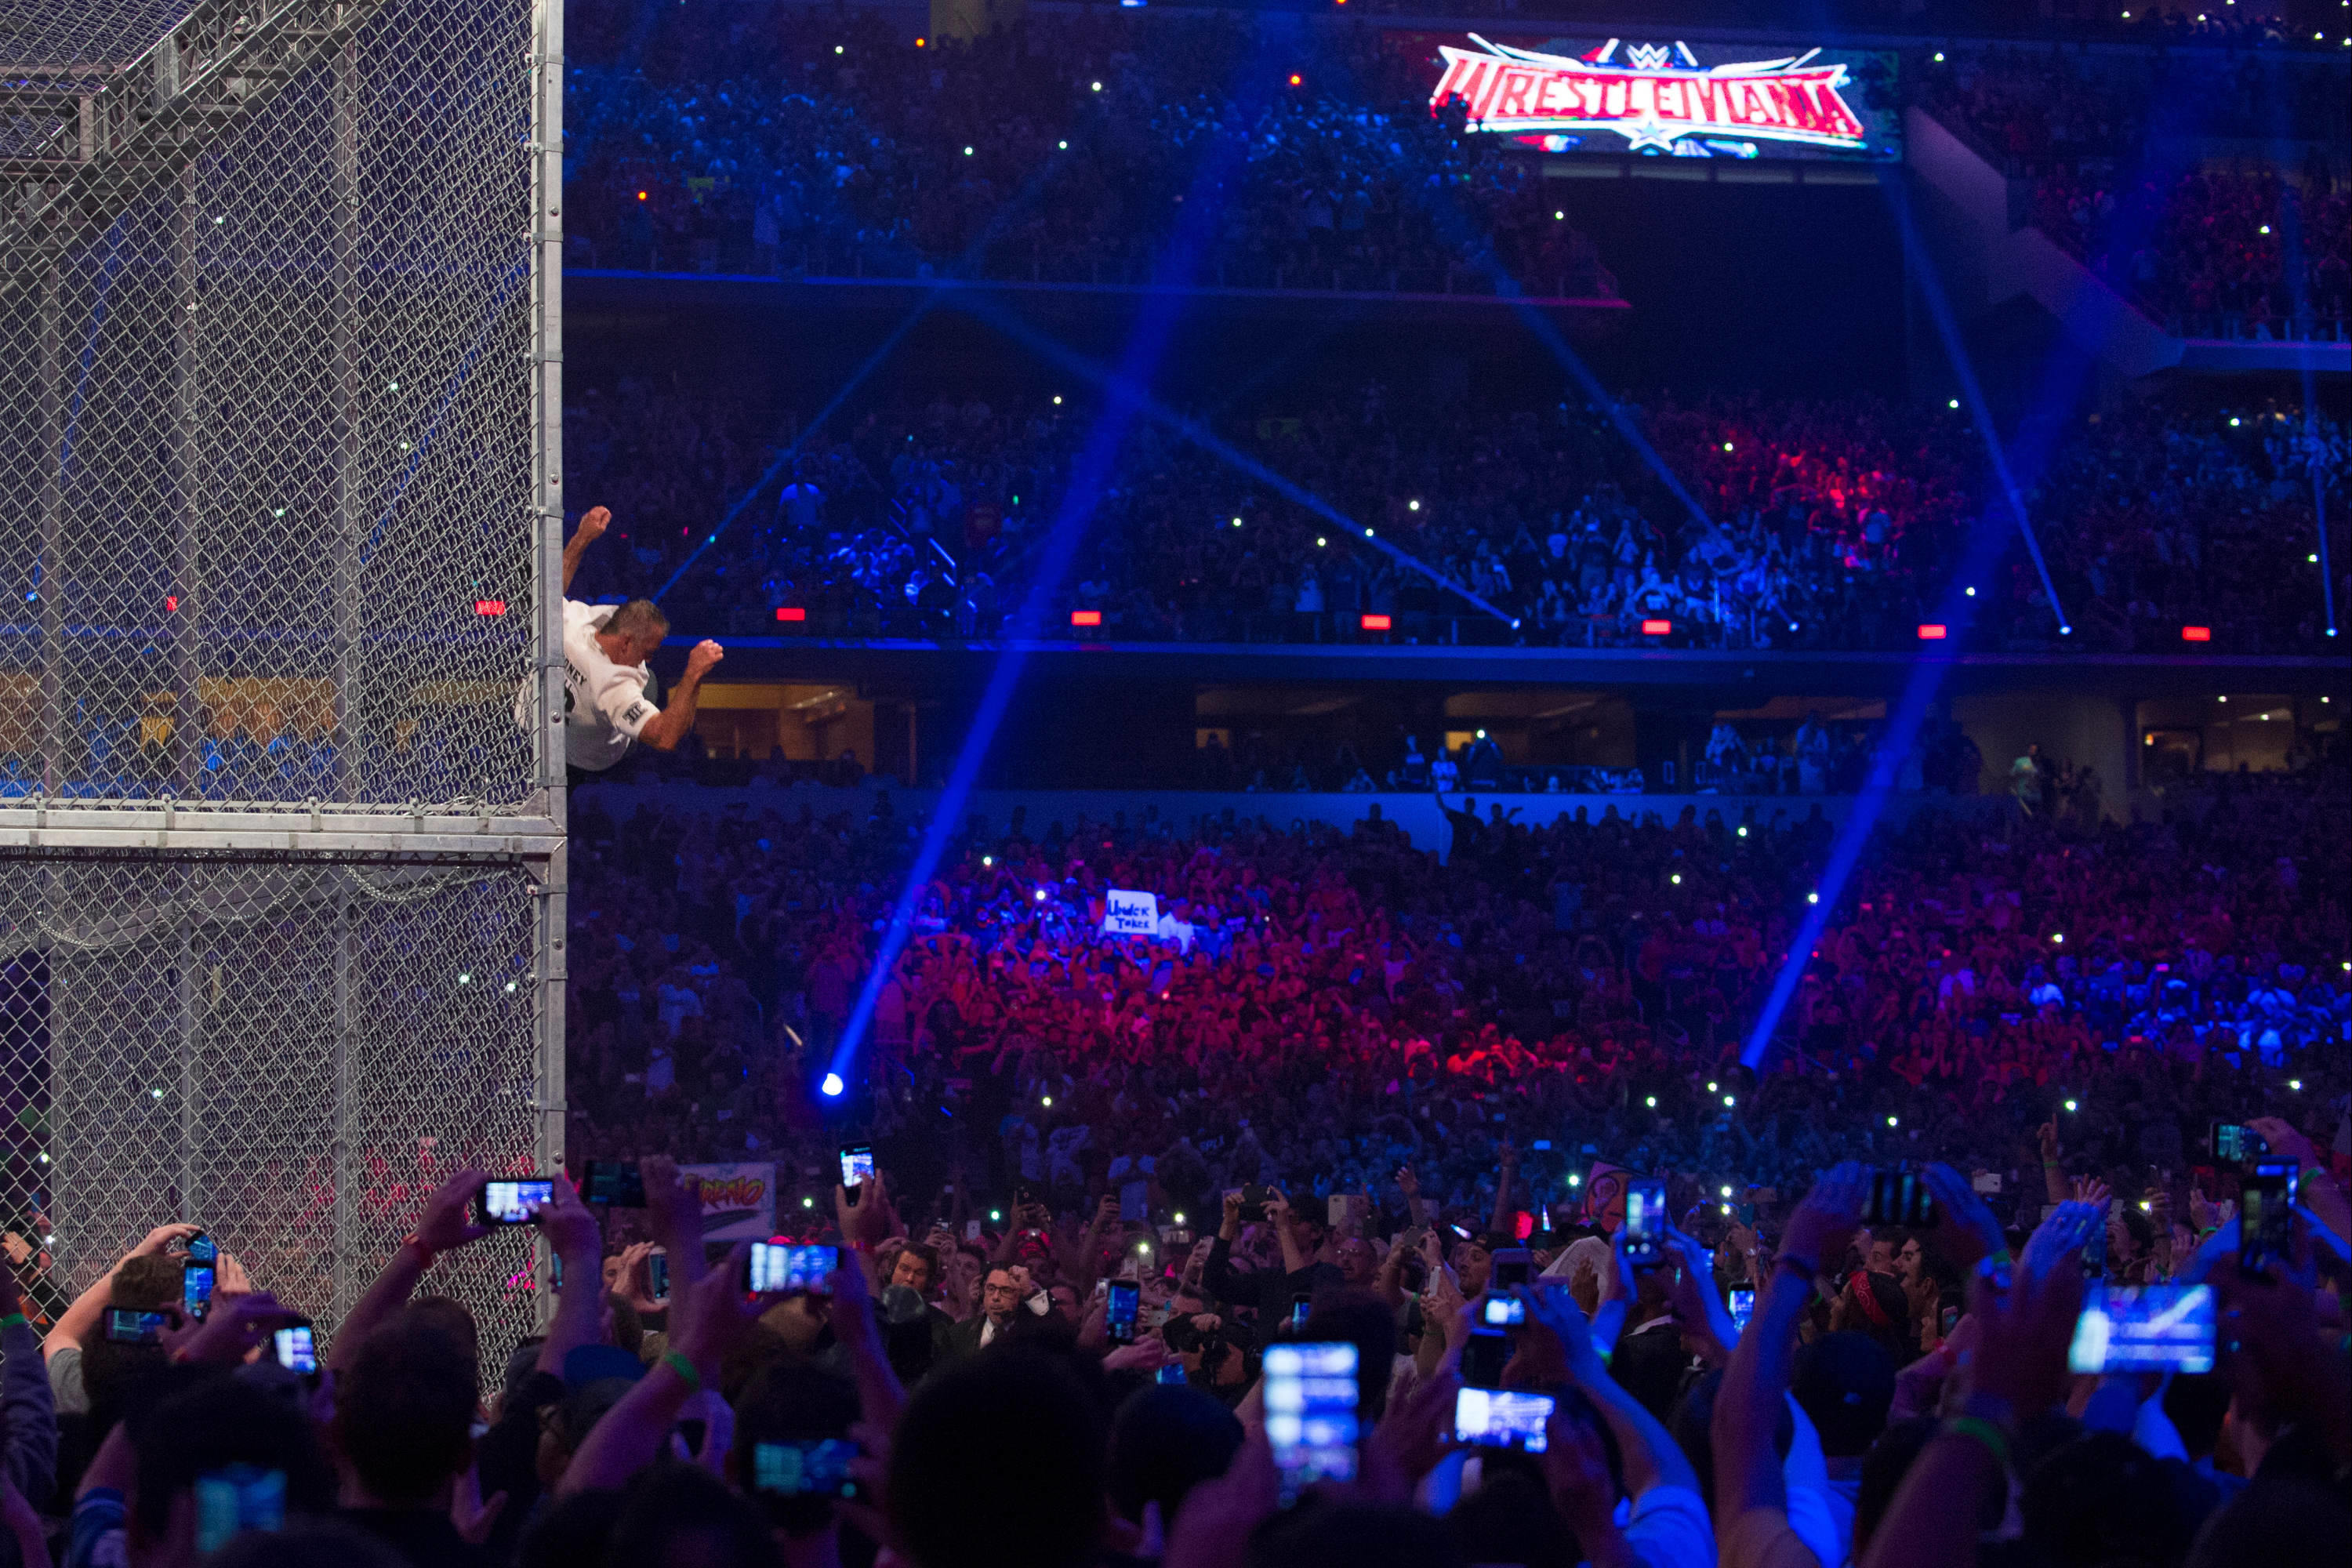 Wwe announces 2q14 earnings wwe network subscriptions youtube - Shane Mcmahon Launches Himself Off The Top Of A Steel Cage During His Match Against The Undertaker At Wrestlemania 32 Photo By Cooper Neill